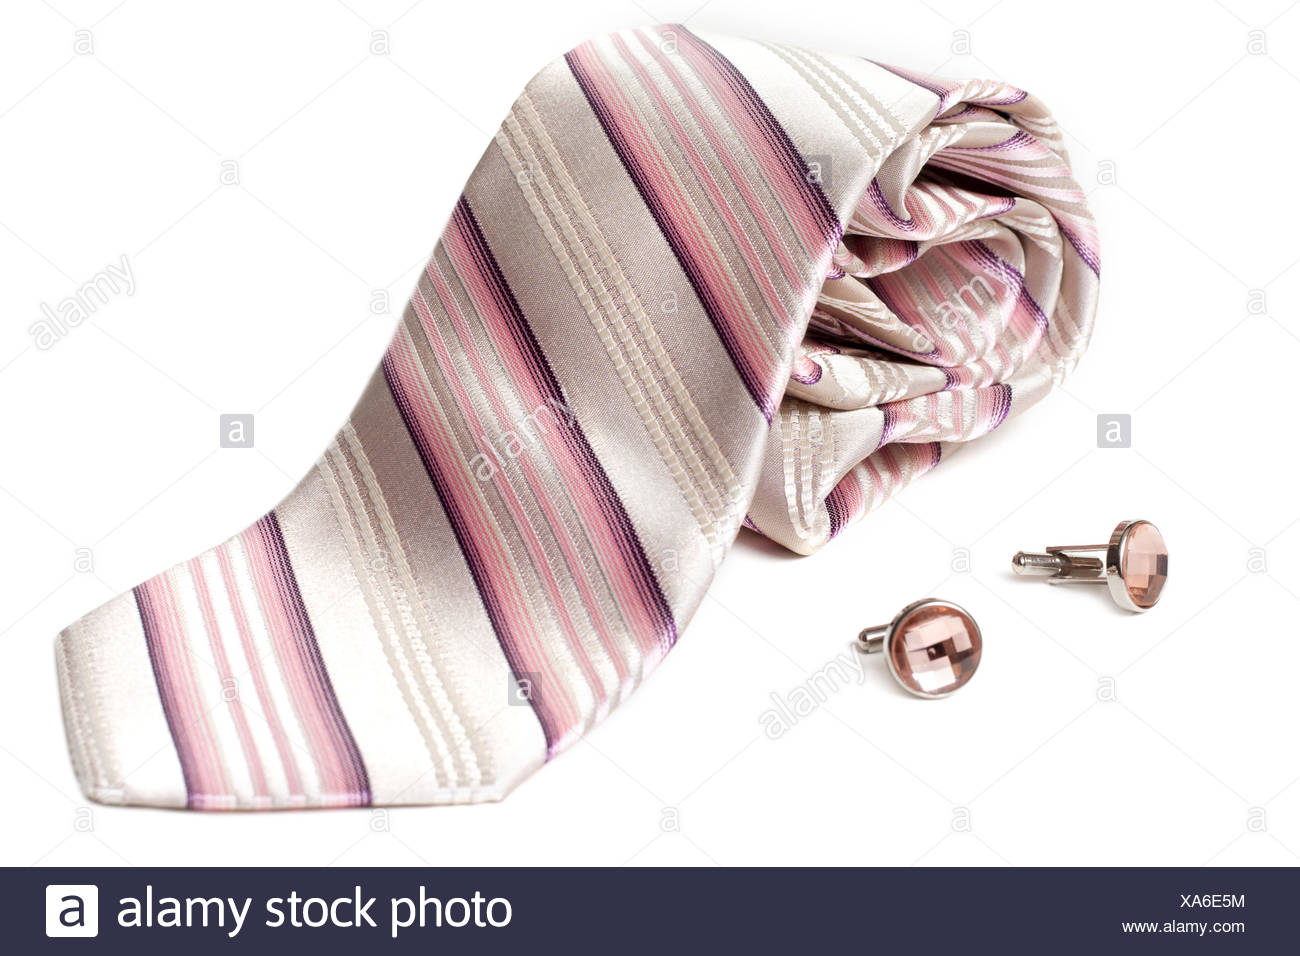 Rose striped tie and cuff links Stock Photo